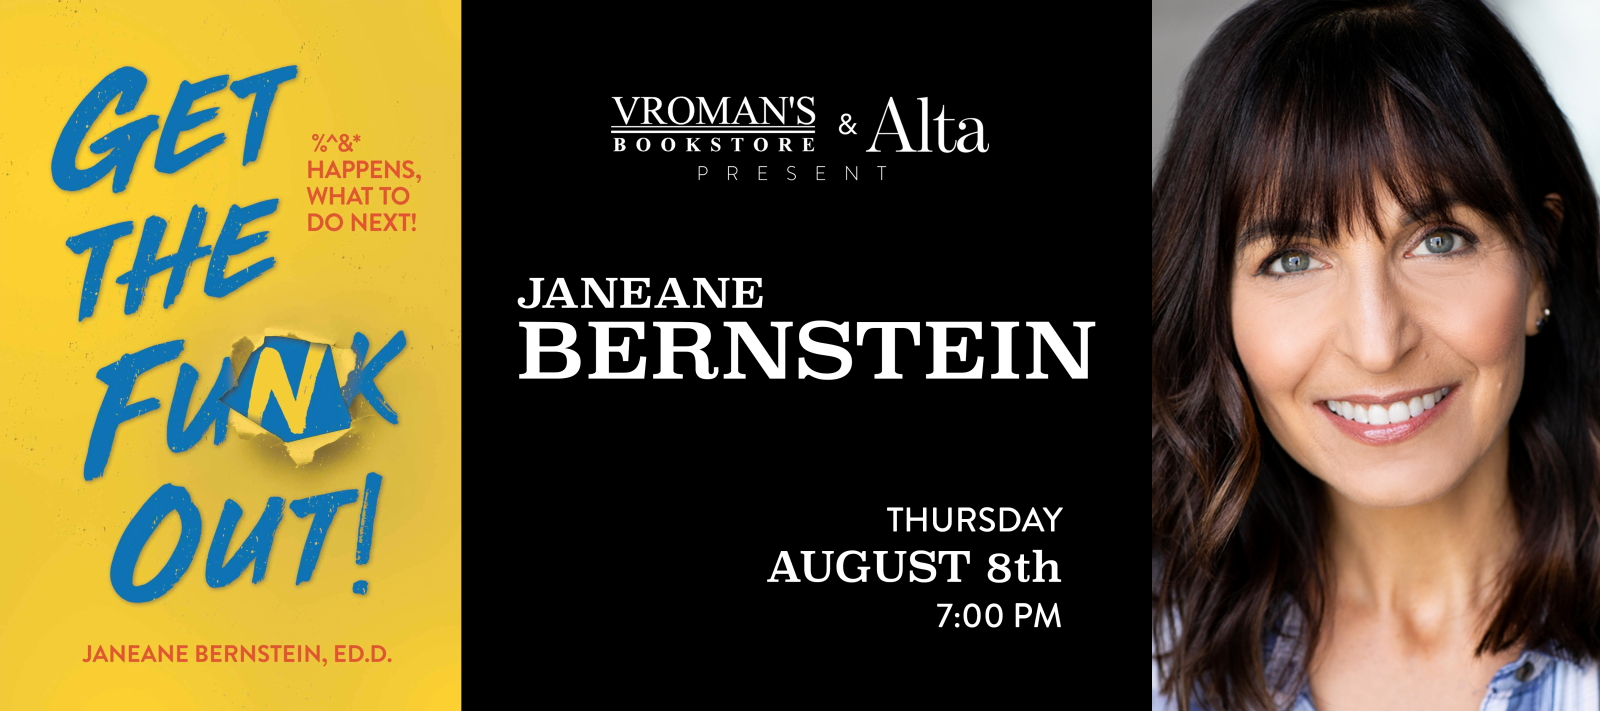 Janeane Bernstein book signing Thursday August 8th at 7pm